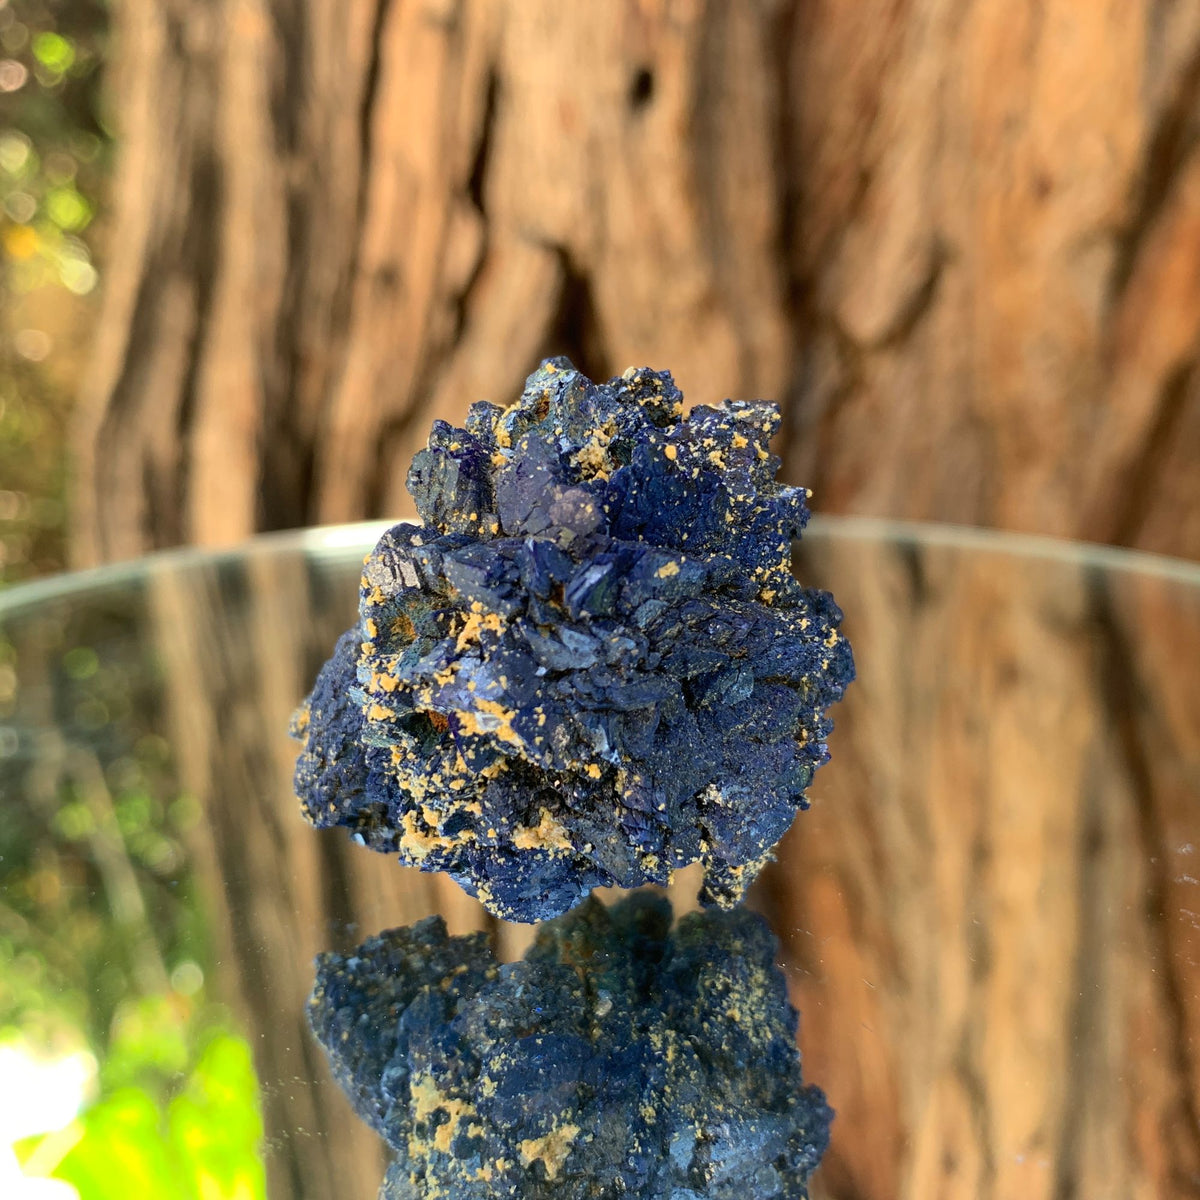 4.5cm 64g Azurite from Bou Beker, Morocco